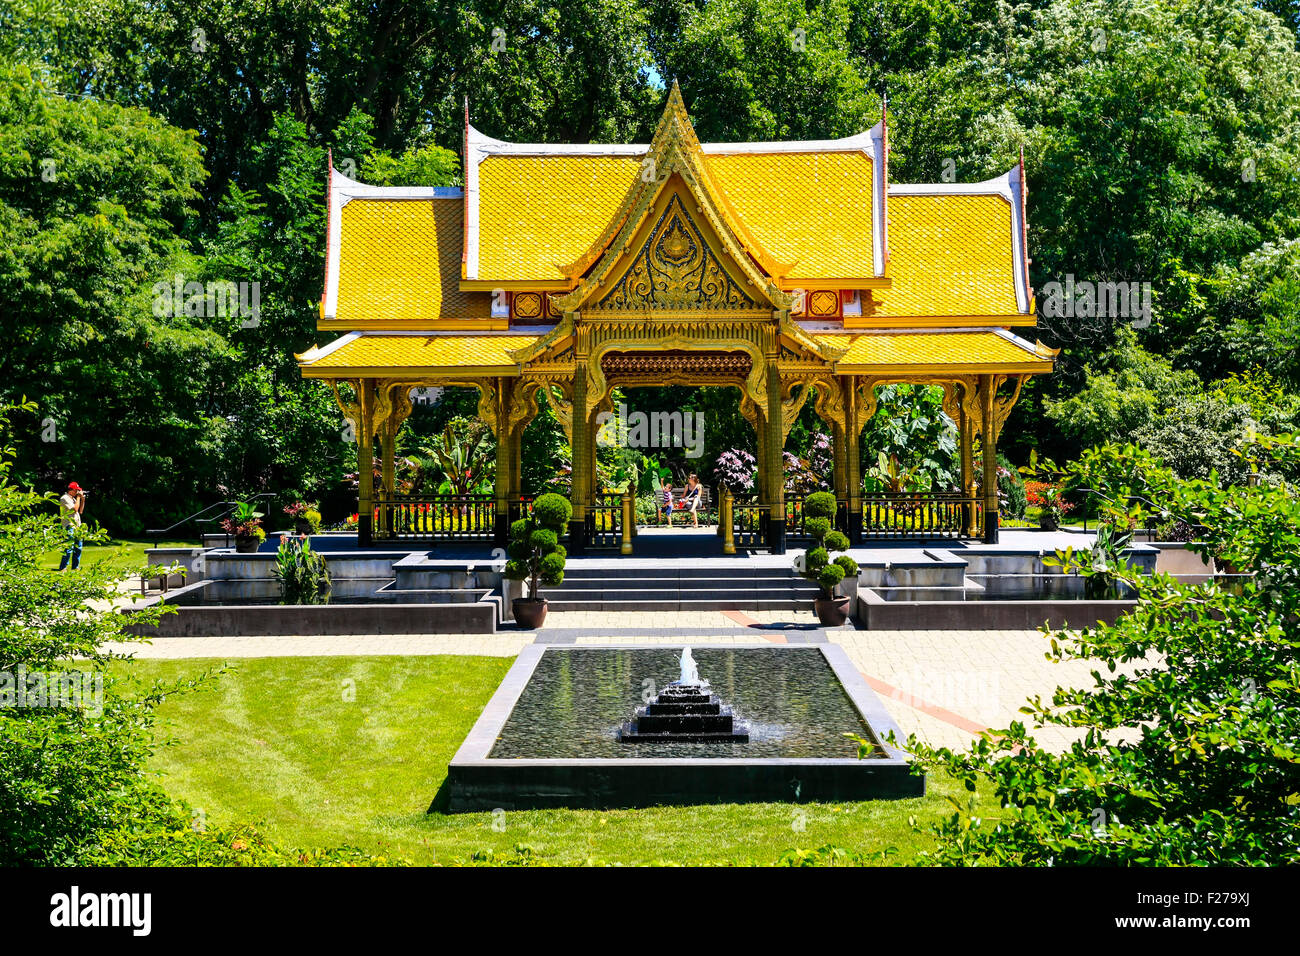 The Golden Thai Pavillion At Olbrich Botanical Gardens In Madison Wisconsin